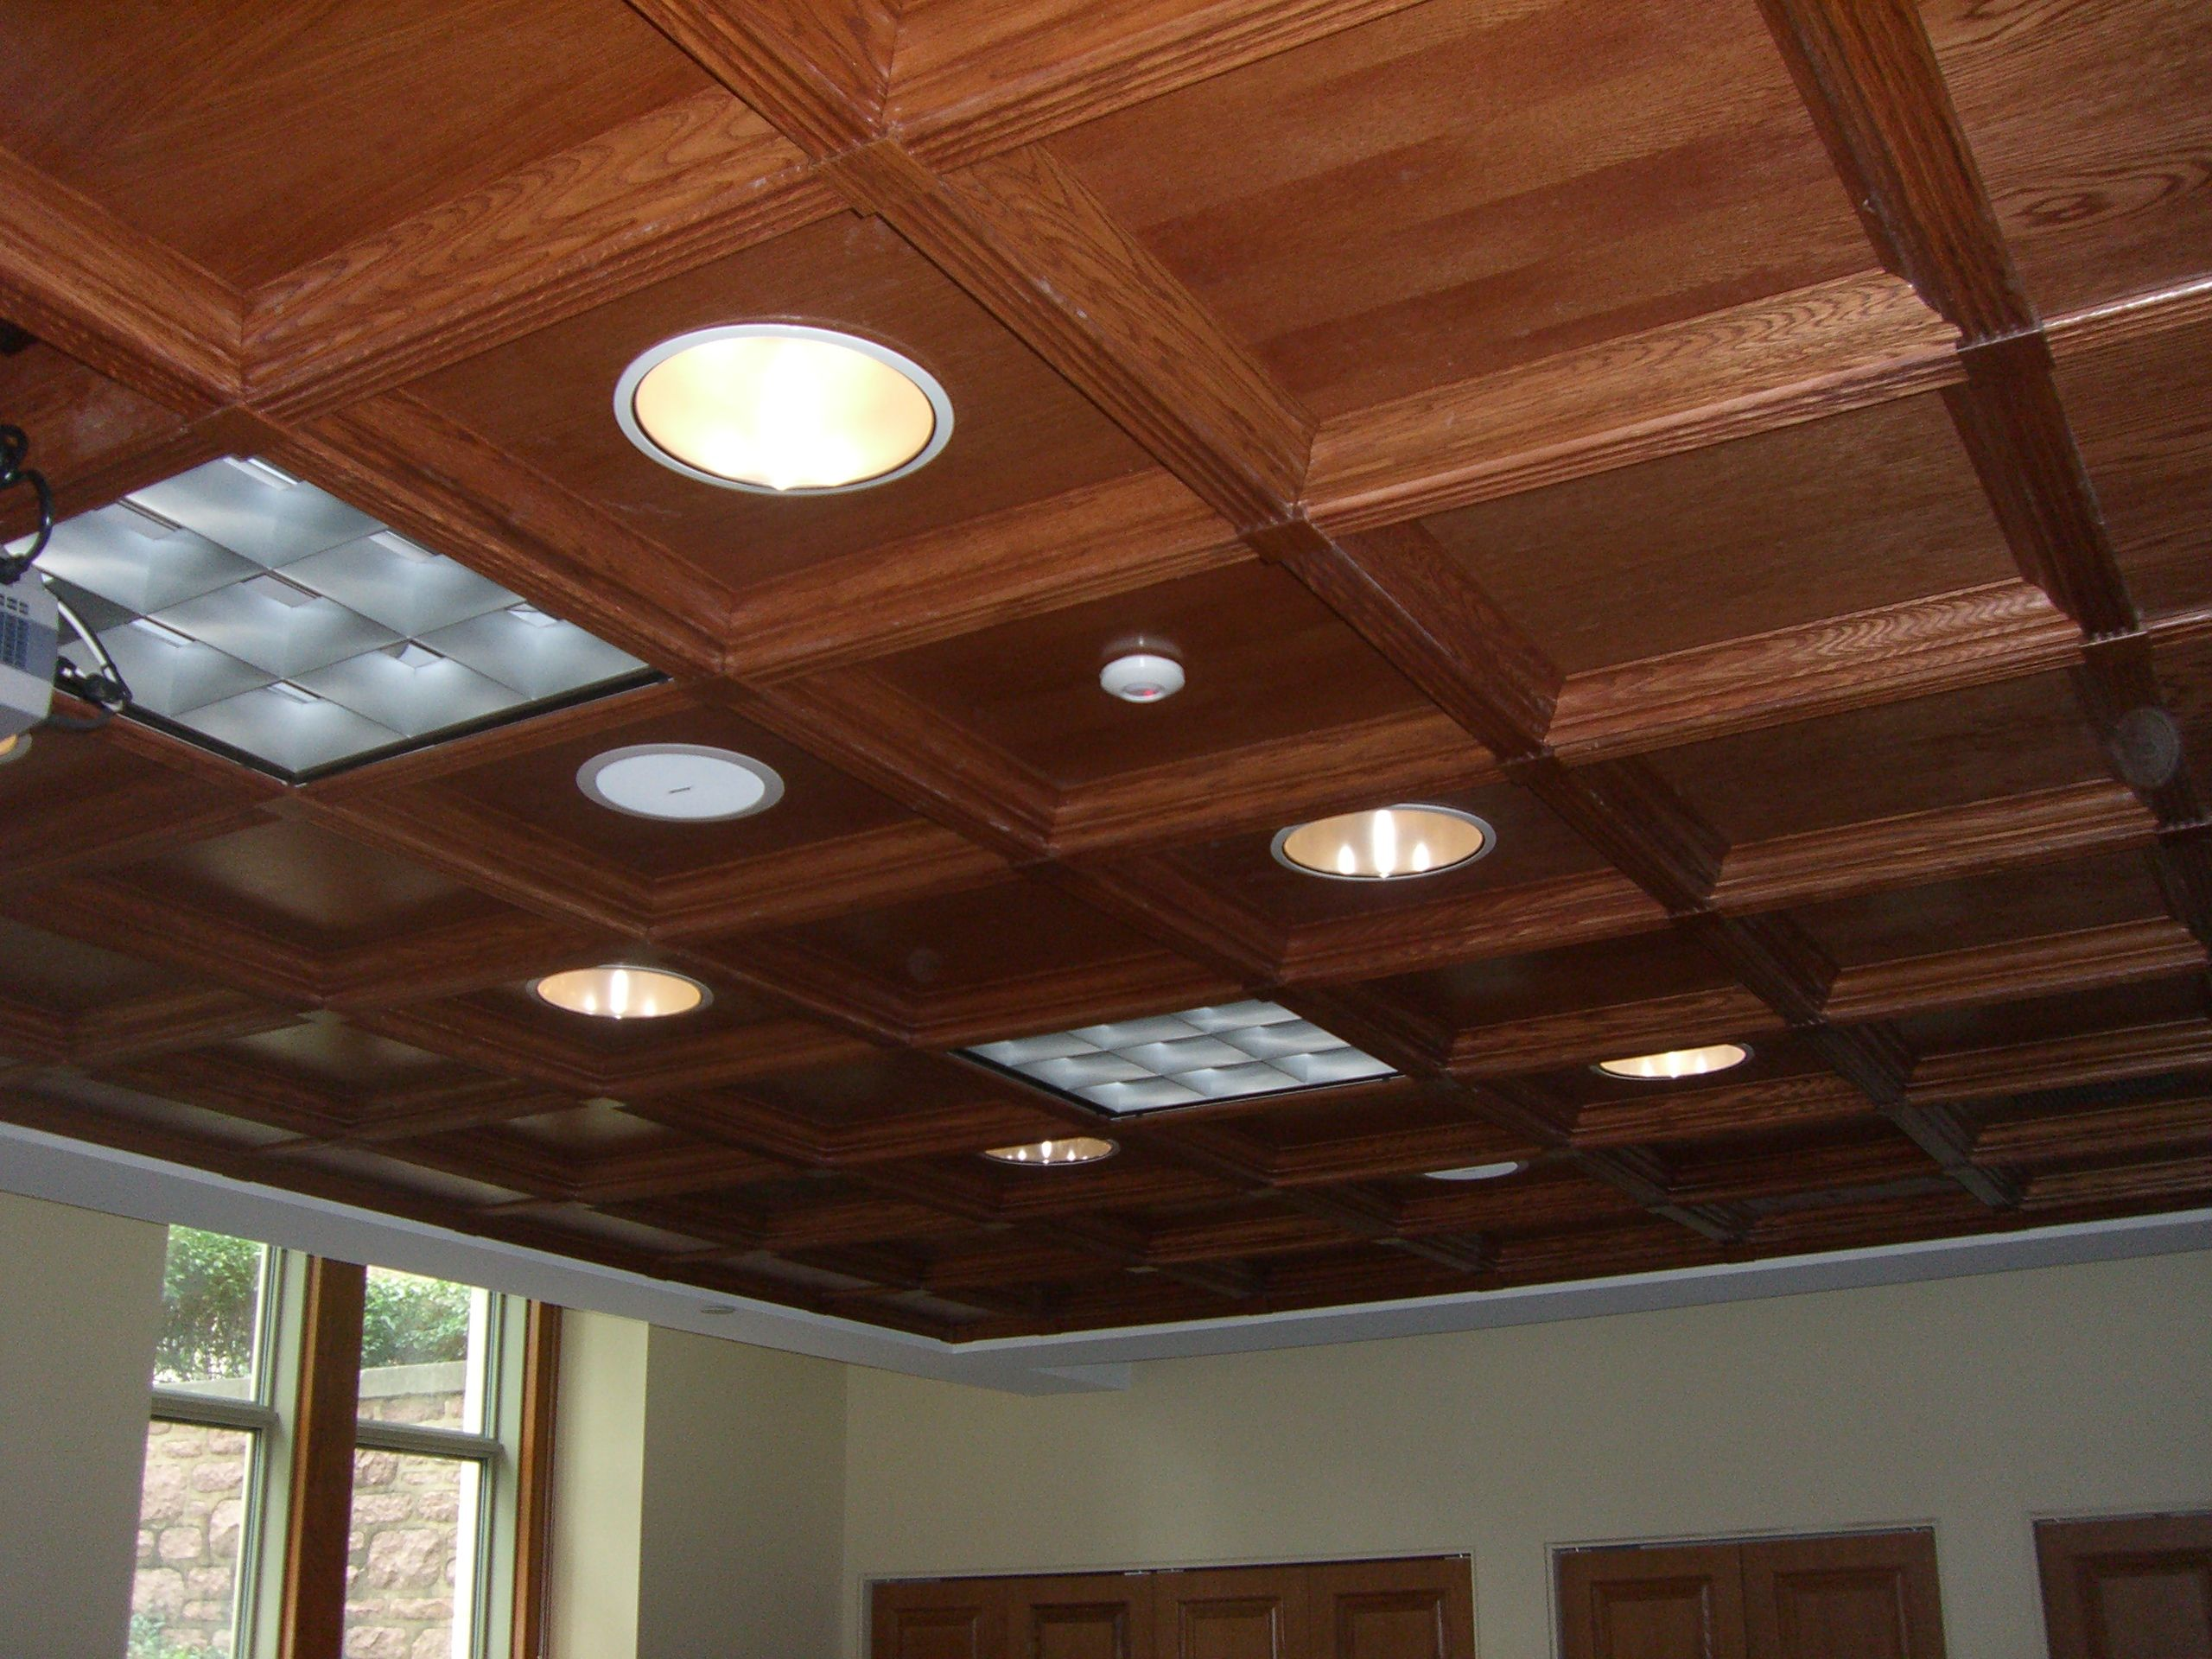 panels three install i wood easy tub of only hot tin d ceiling a tiles above photo threedceilings white